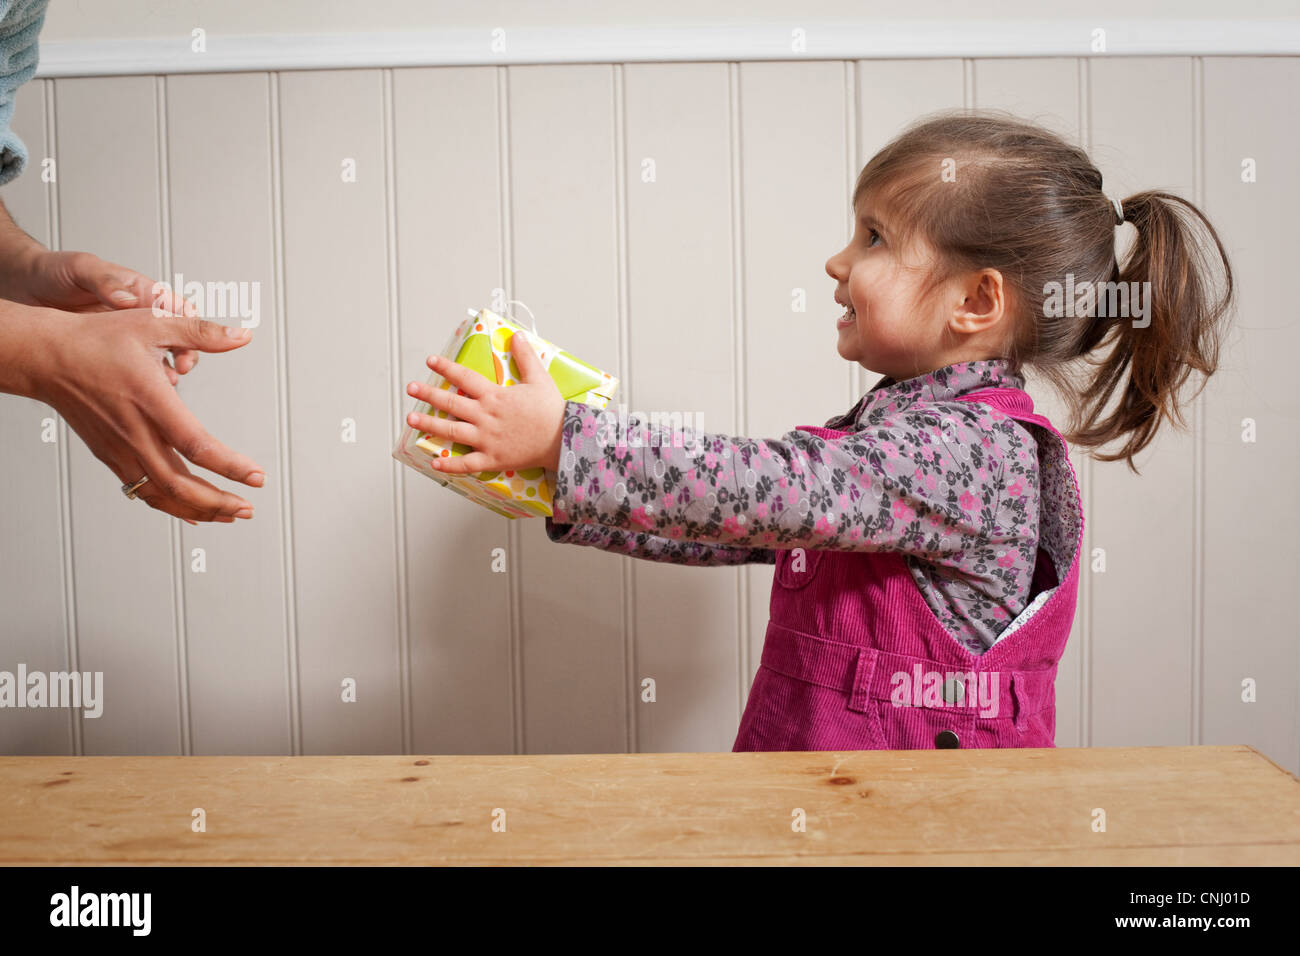 Little girl giving a gift to adult - Stock Image